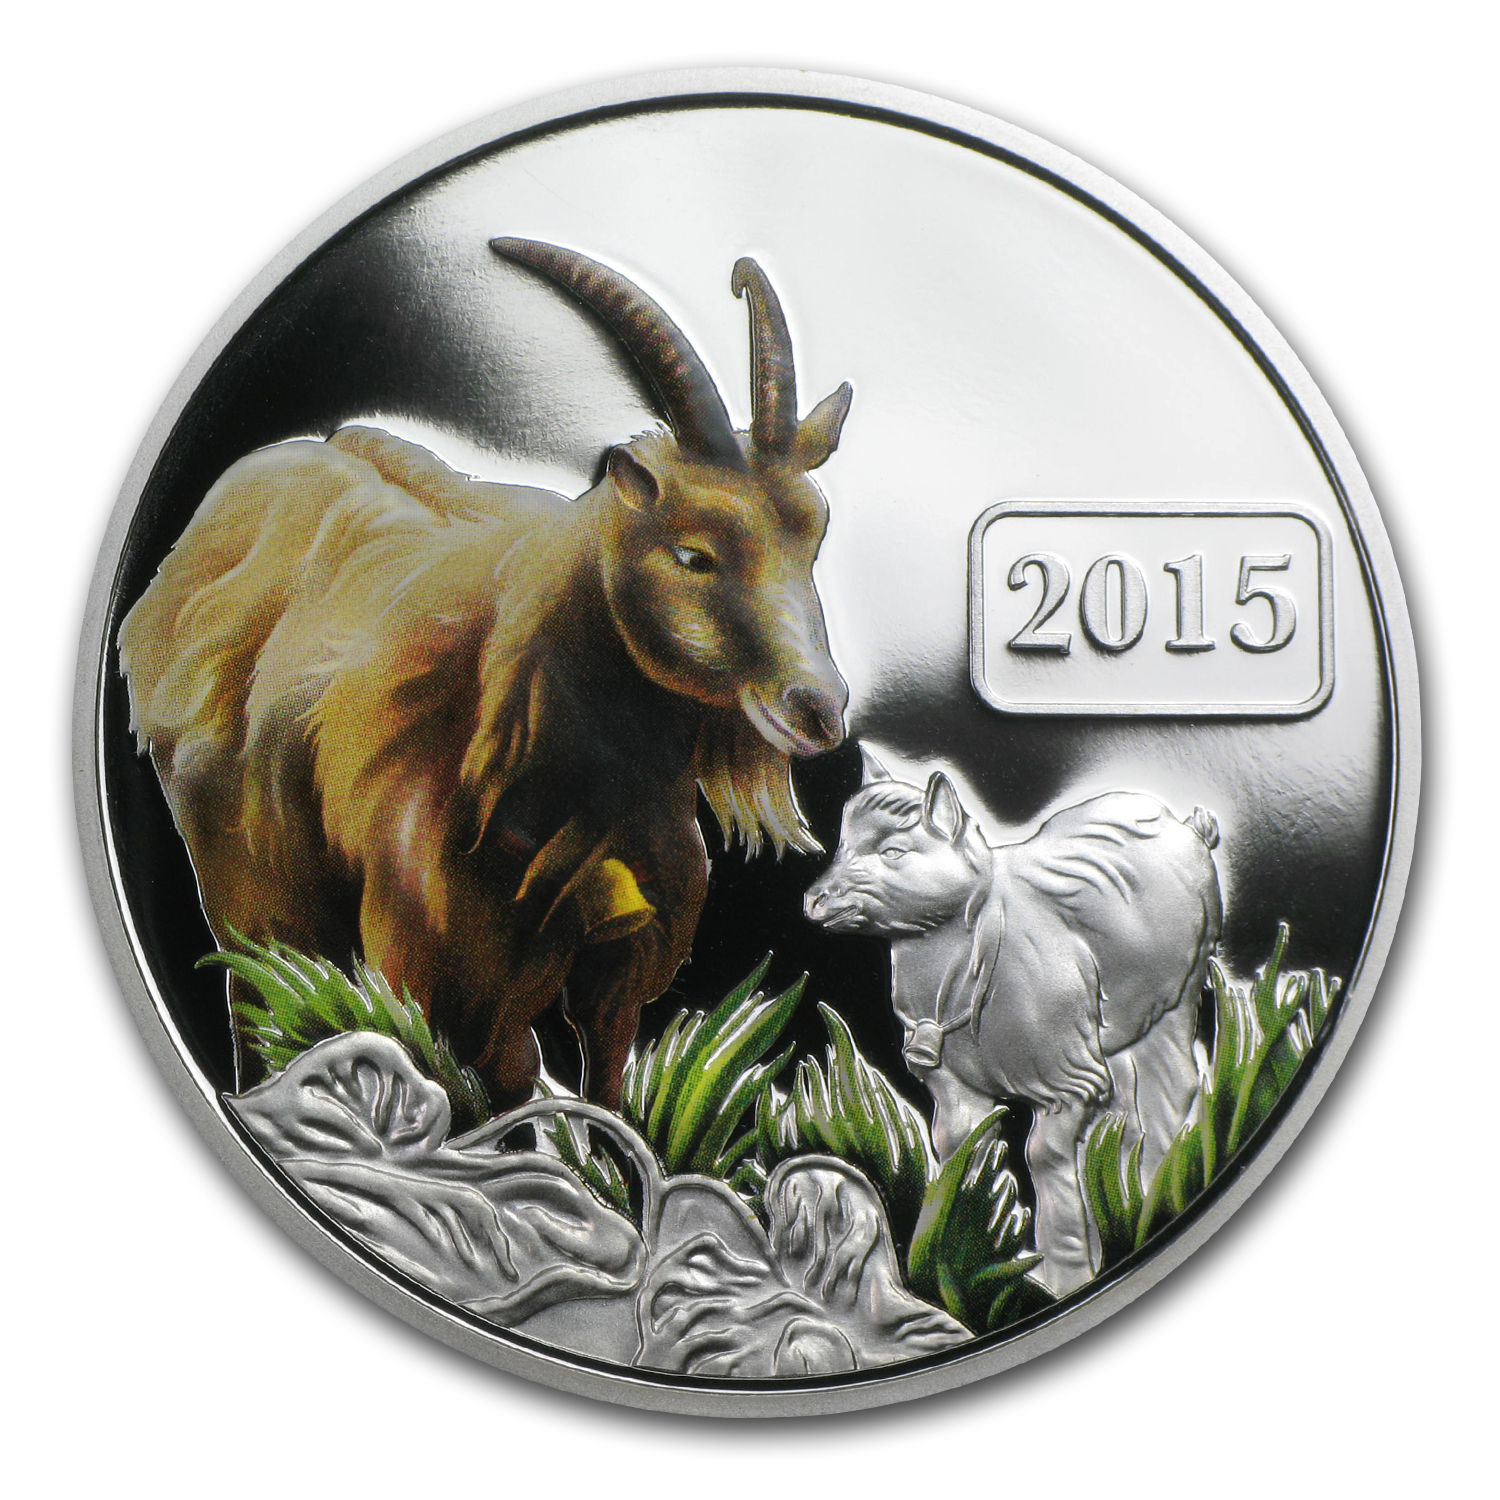 2015 Tokelau 1 oz Silver $5 Year of the Goat Proof (Colorized)